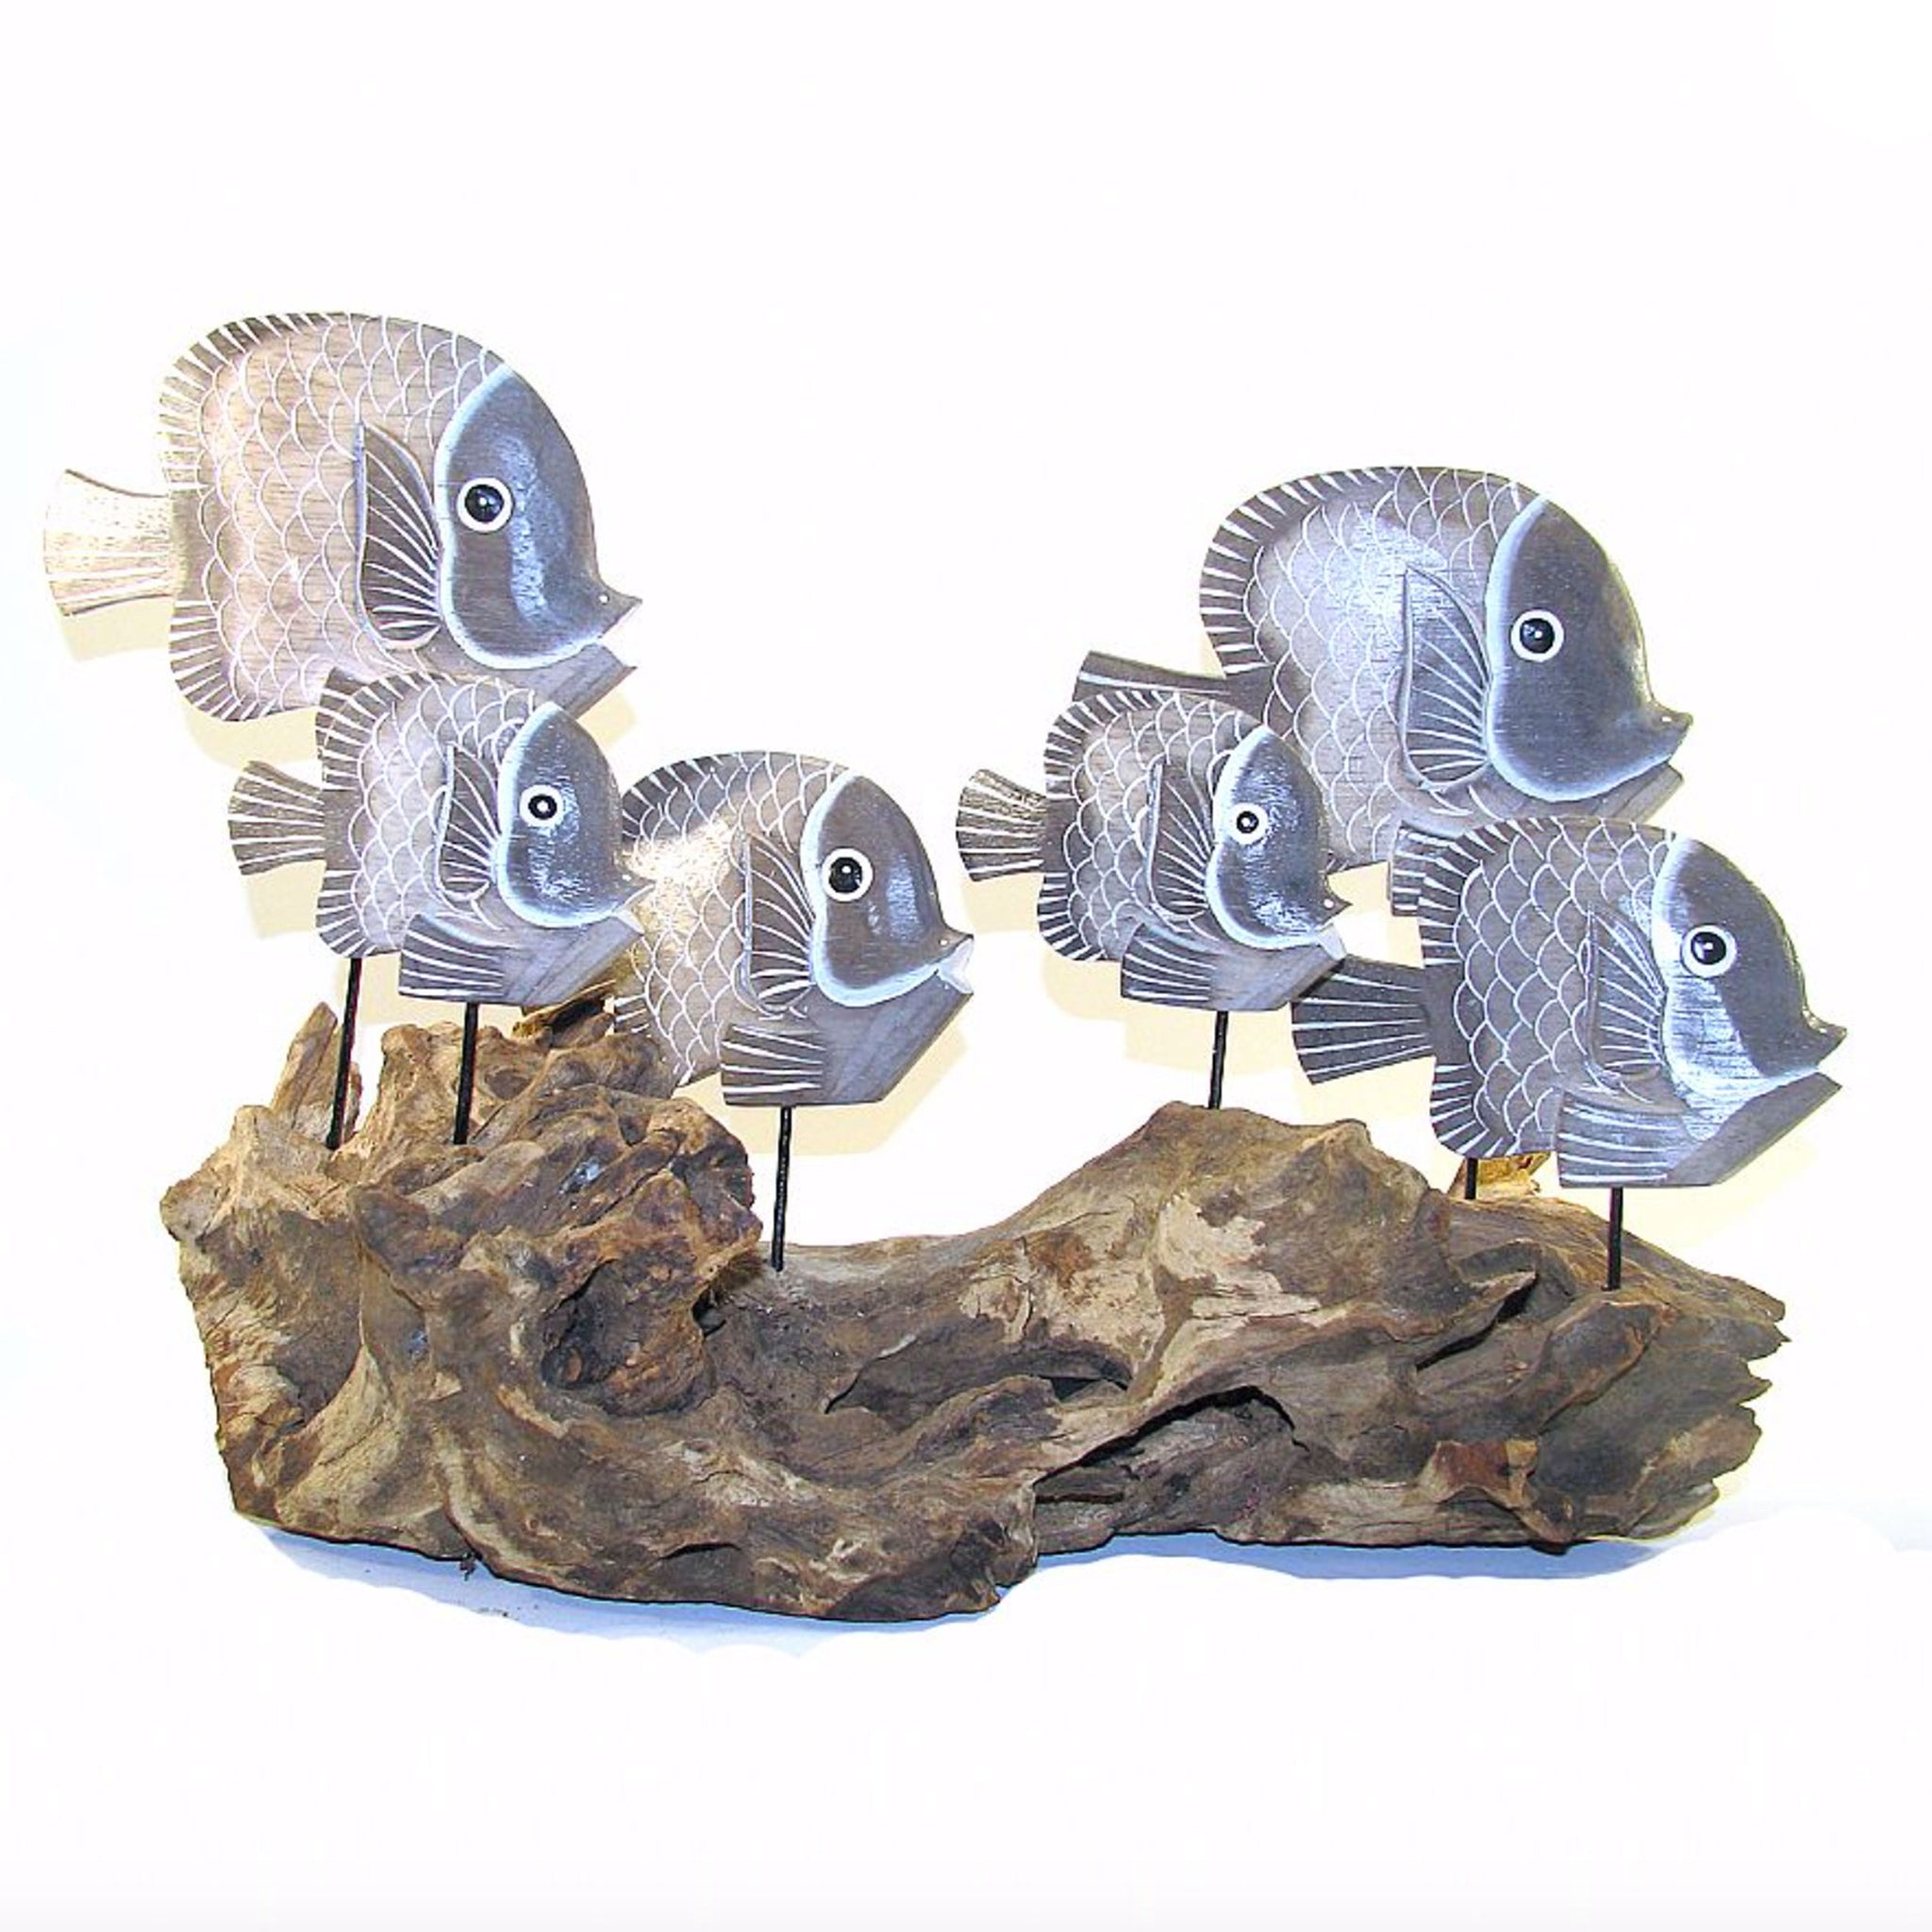 Six Fish Swimming on Driftwood